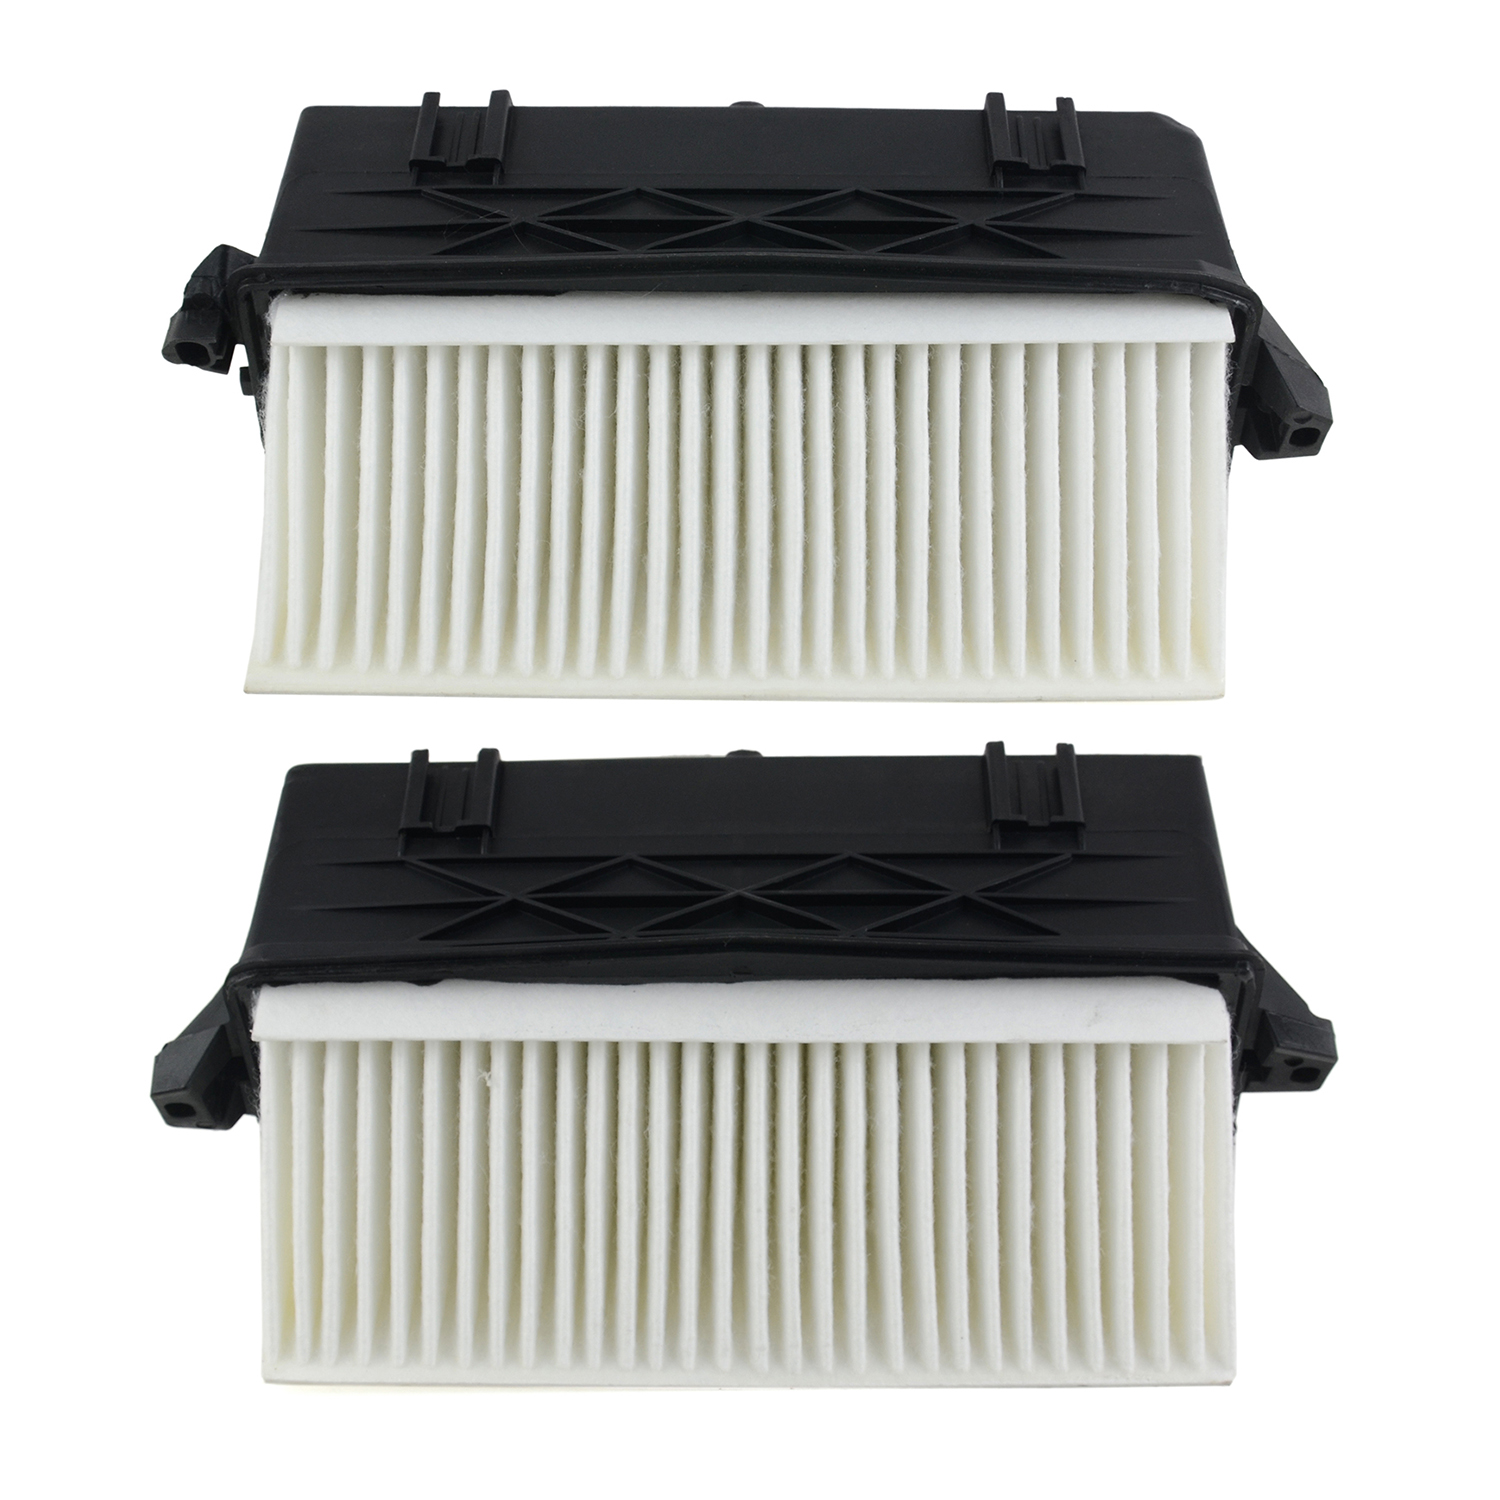 MERCEDES S350 W221 3.0D Air Filter Left 11 to 13 ADL Genuine Quality Replacement